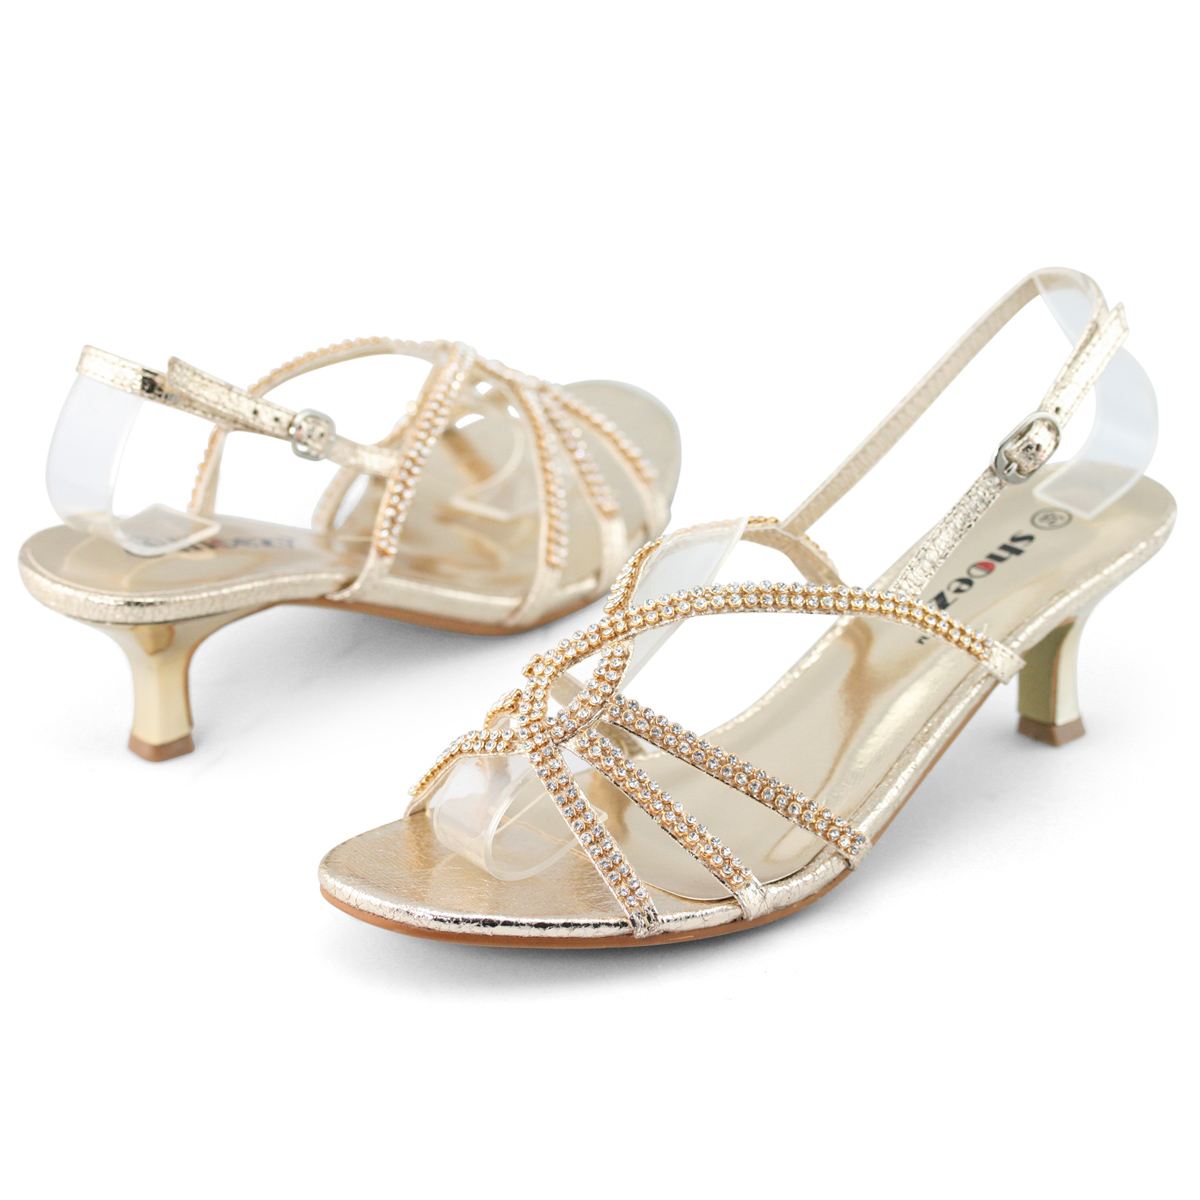 Gold Kitten Heel Sandals